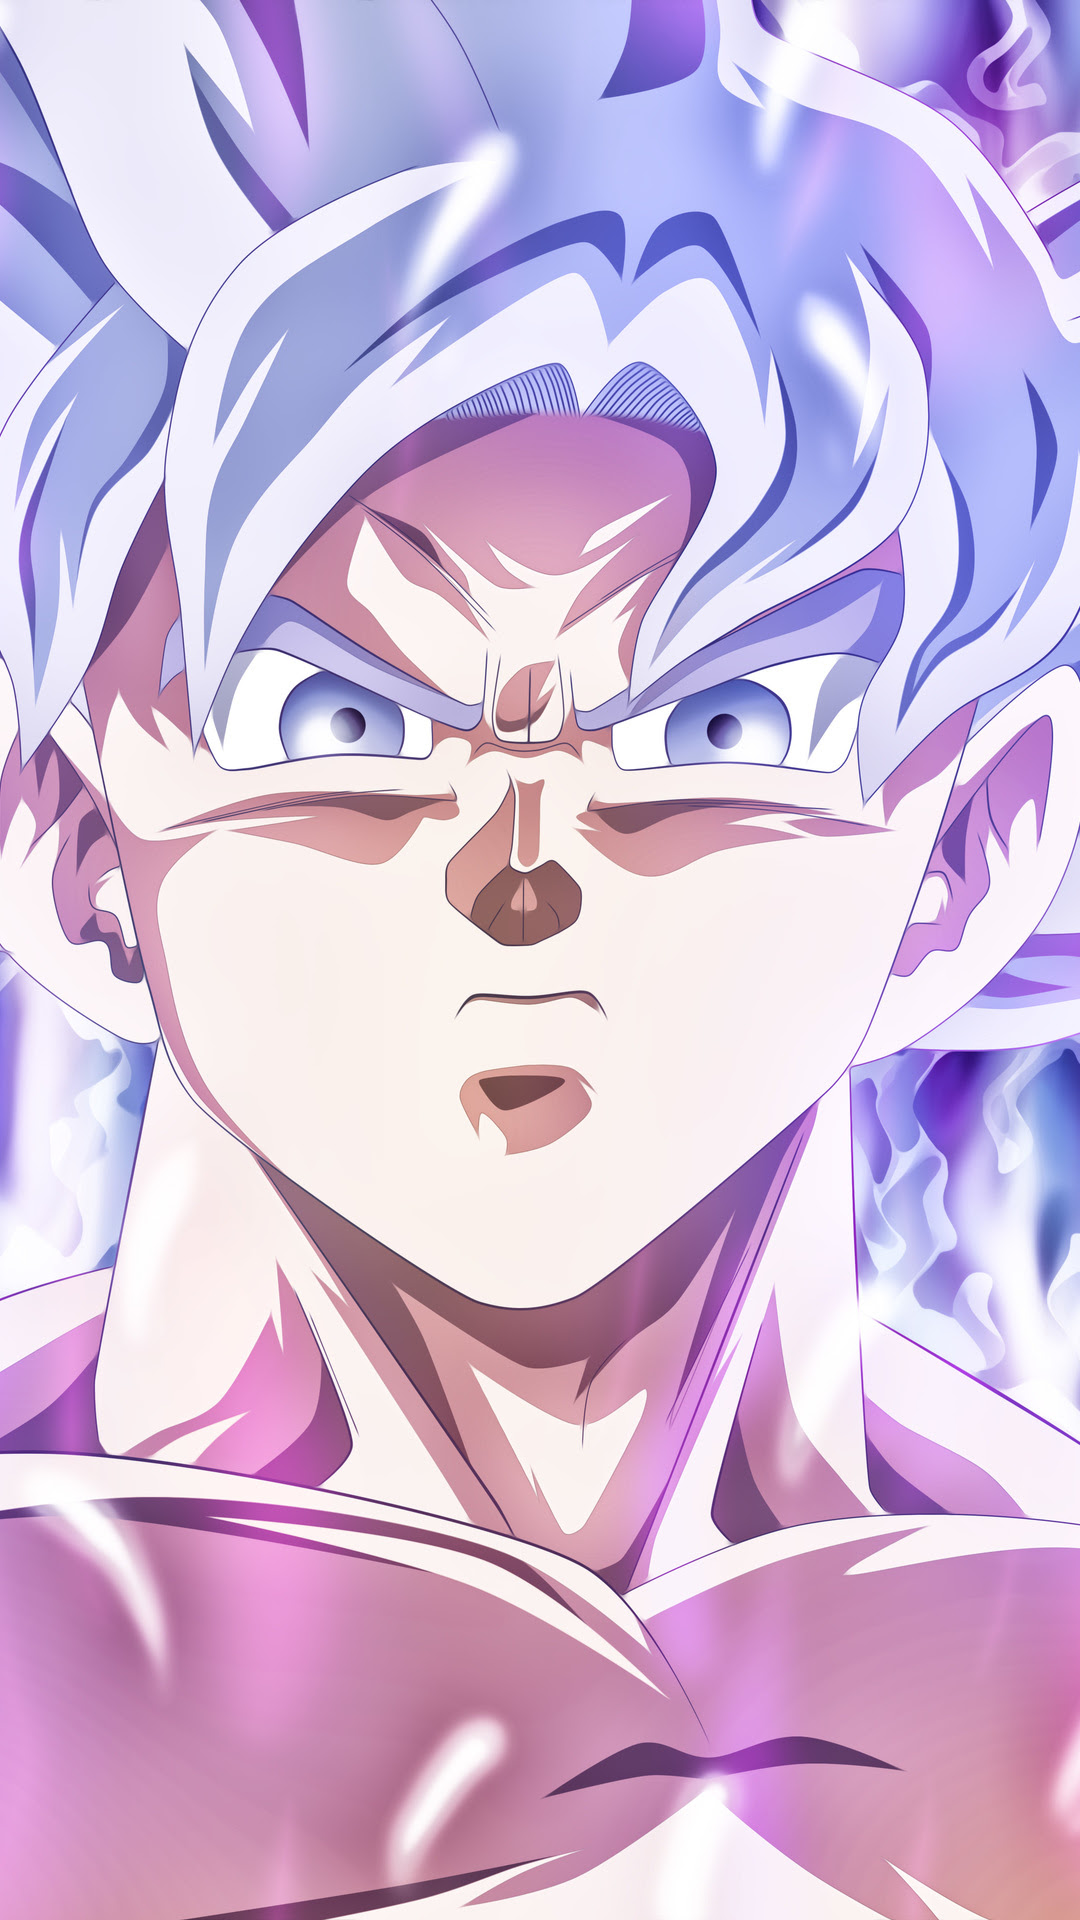 Goku Mastered Ultra Instinct Download 4k Wallpapers